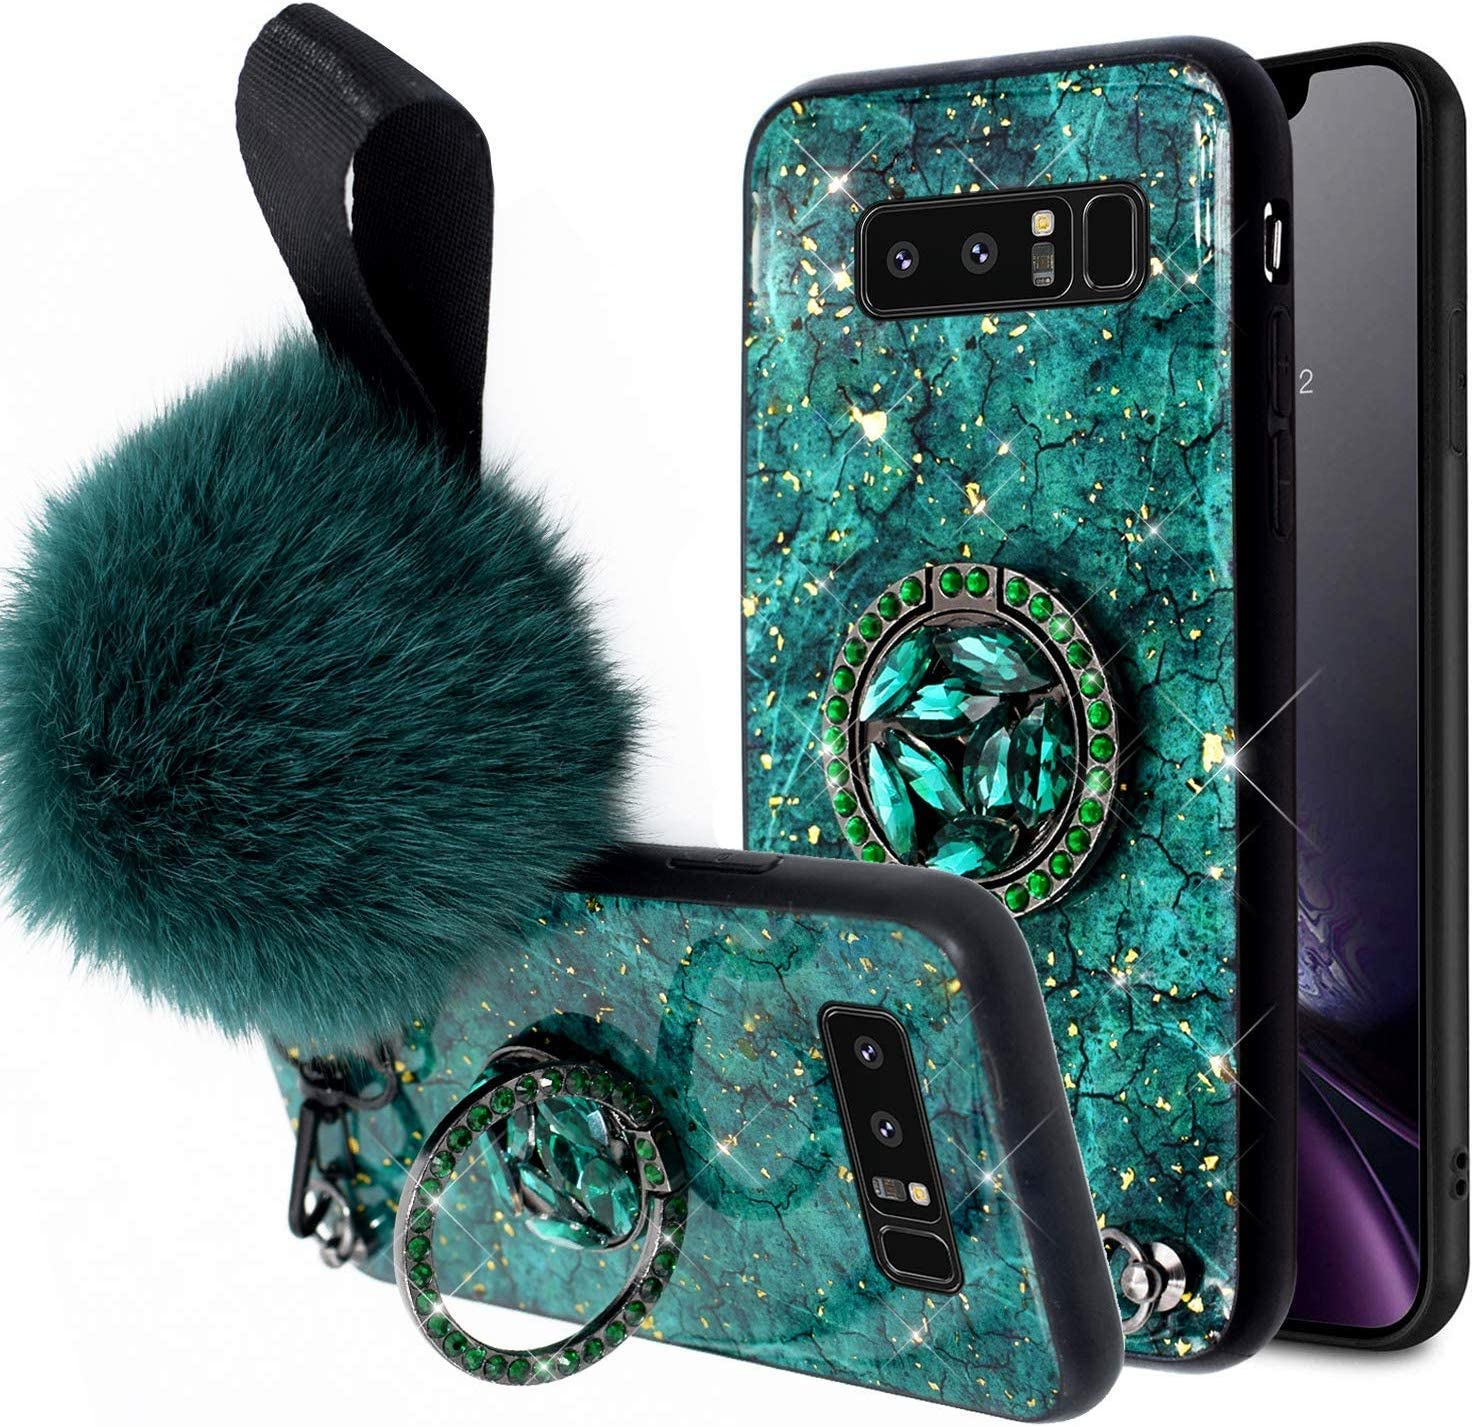 Aulzaju Galaxy S10 Bing Diamond Case Marble Design Samsung S10 Cute Case with Ring Stand S10 Glitter Hard Hybrid Protective Phone Case for Women S10 Case with Soft Funny Furry Ball Wrist Strap-Green